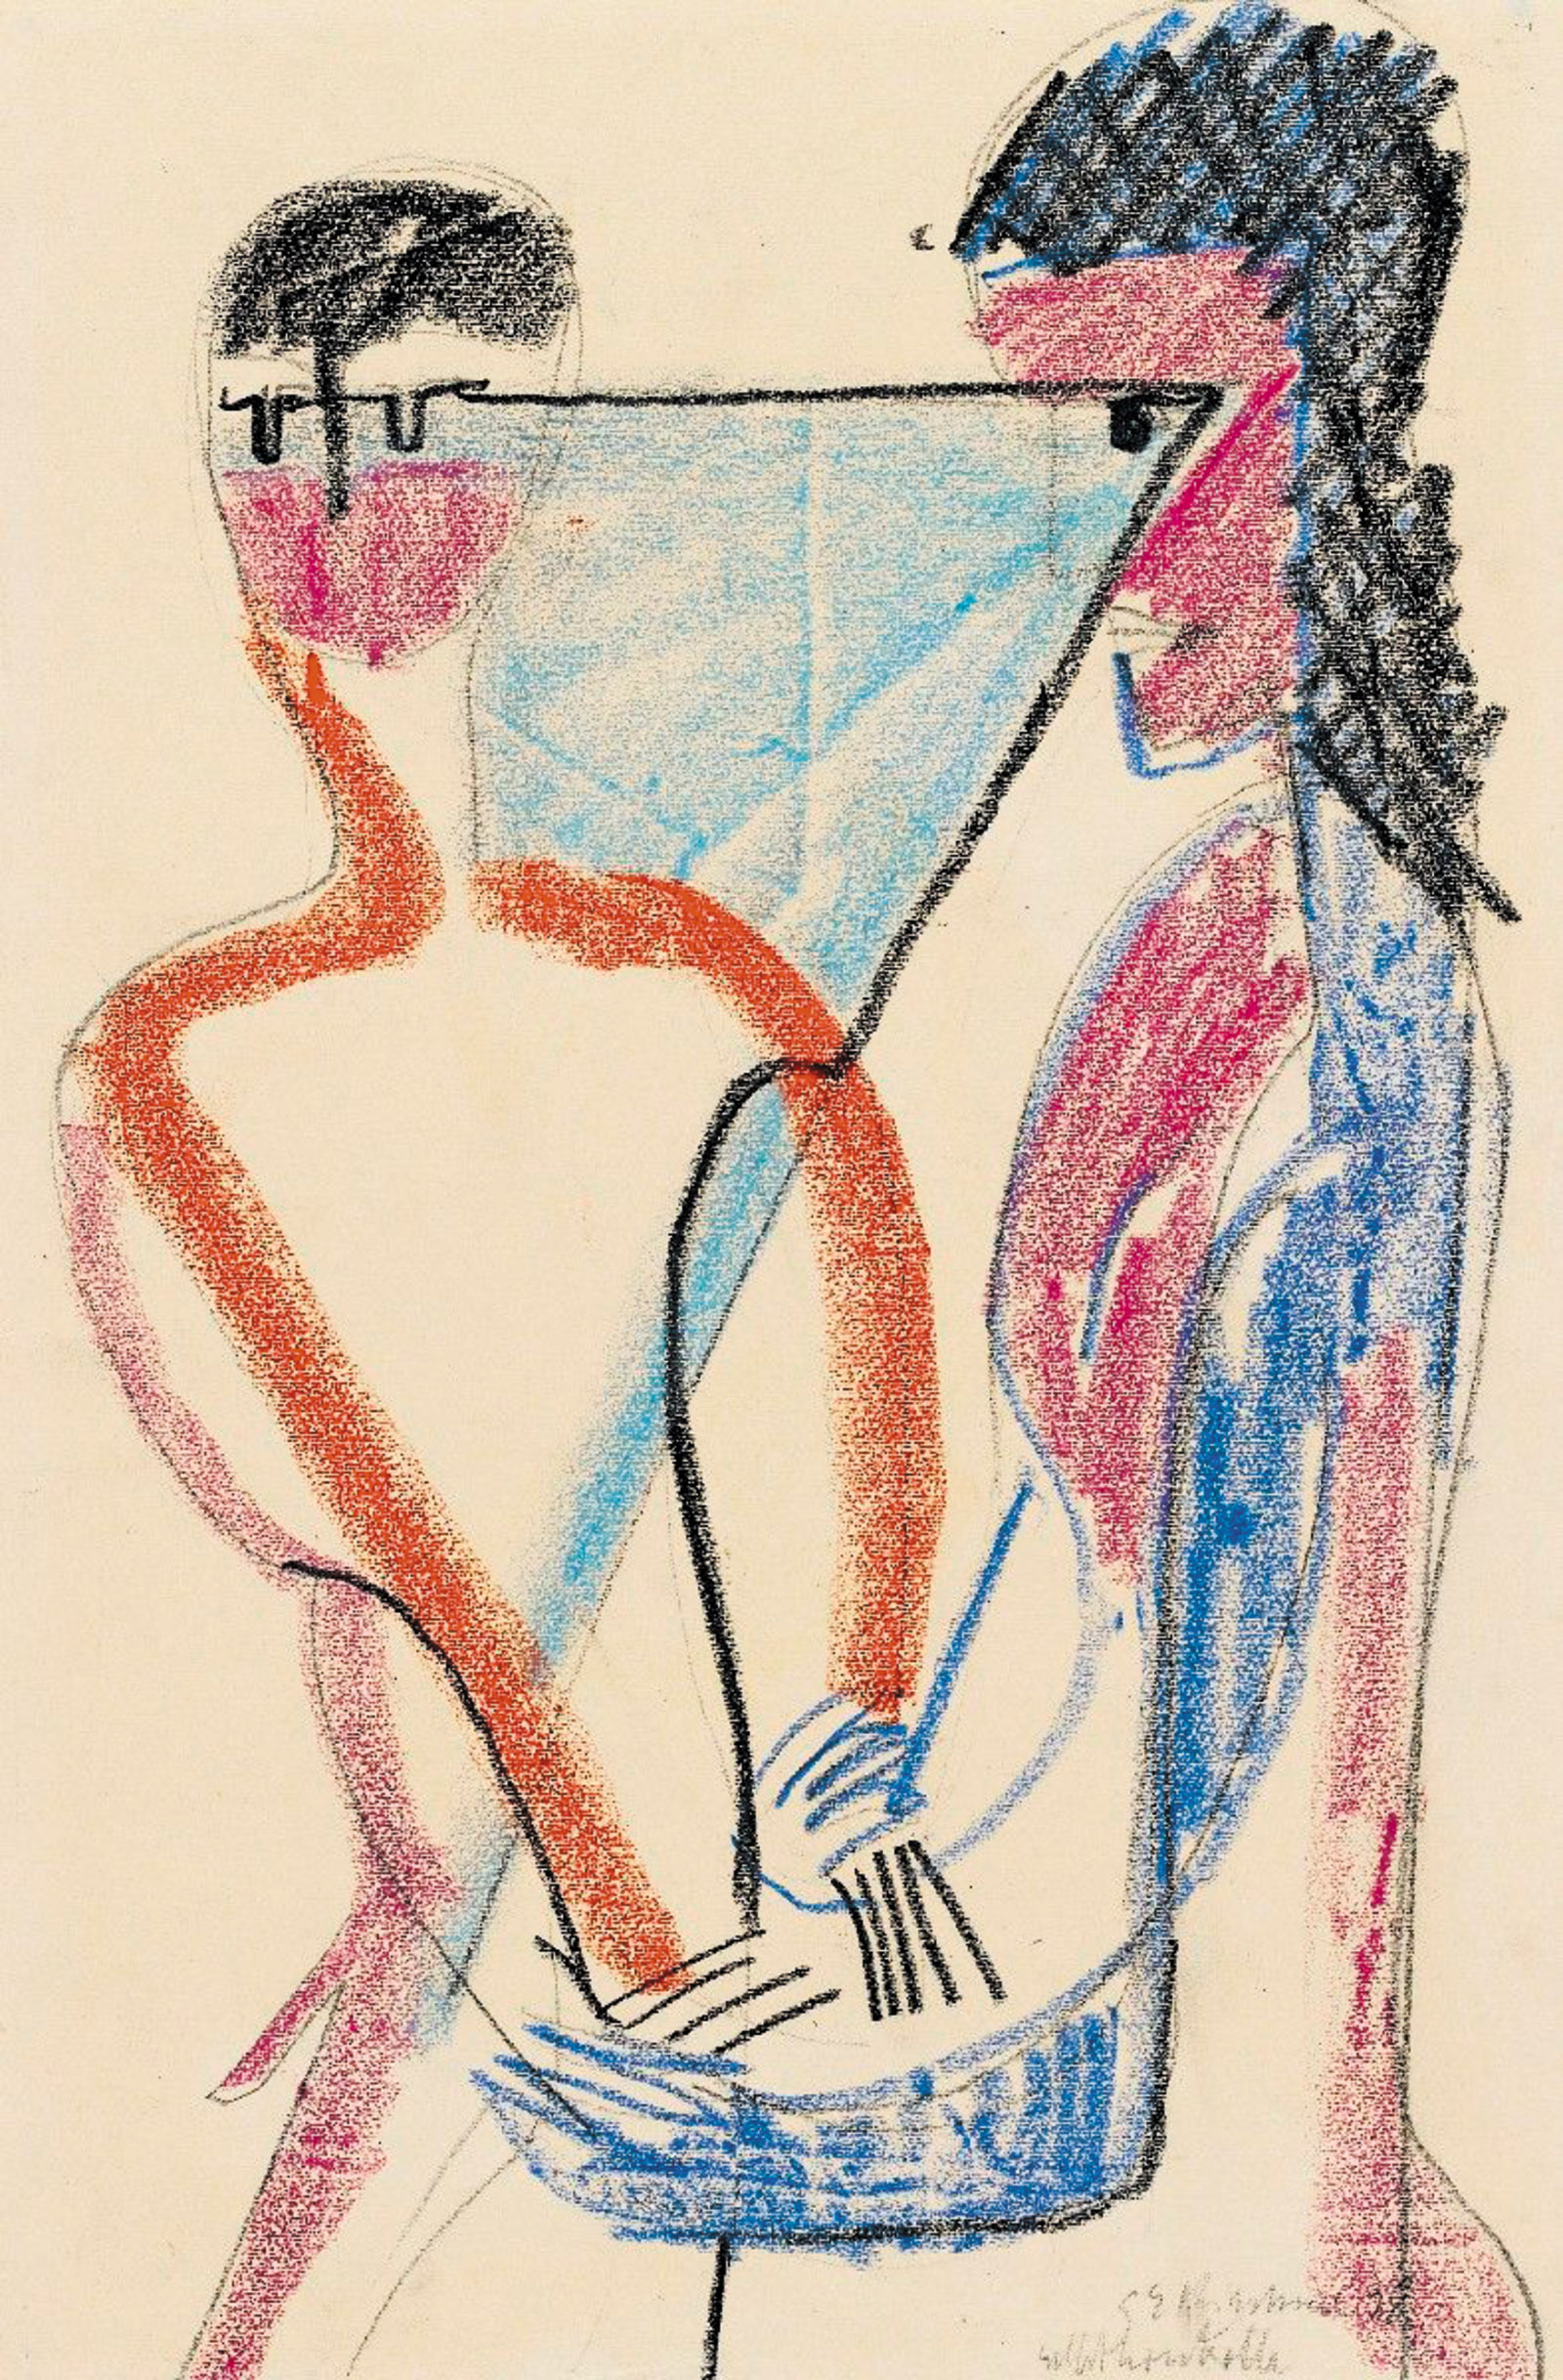 Self-Control; drawing by Ernst Ludwig Kirchner